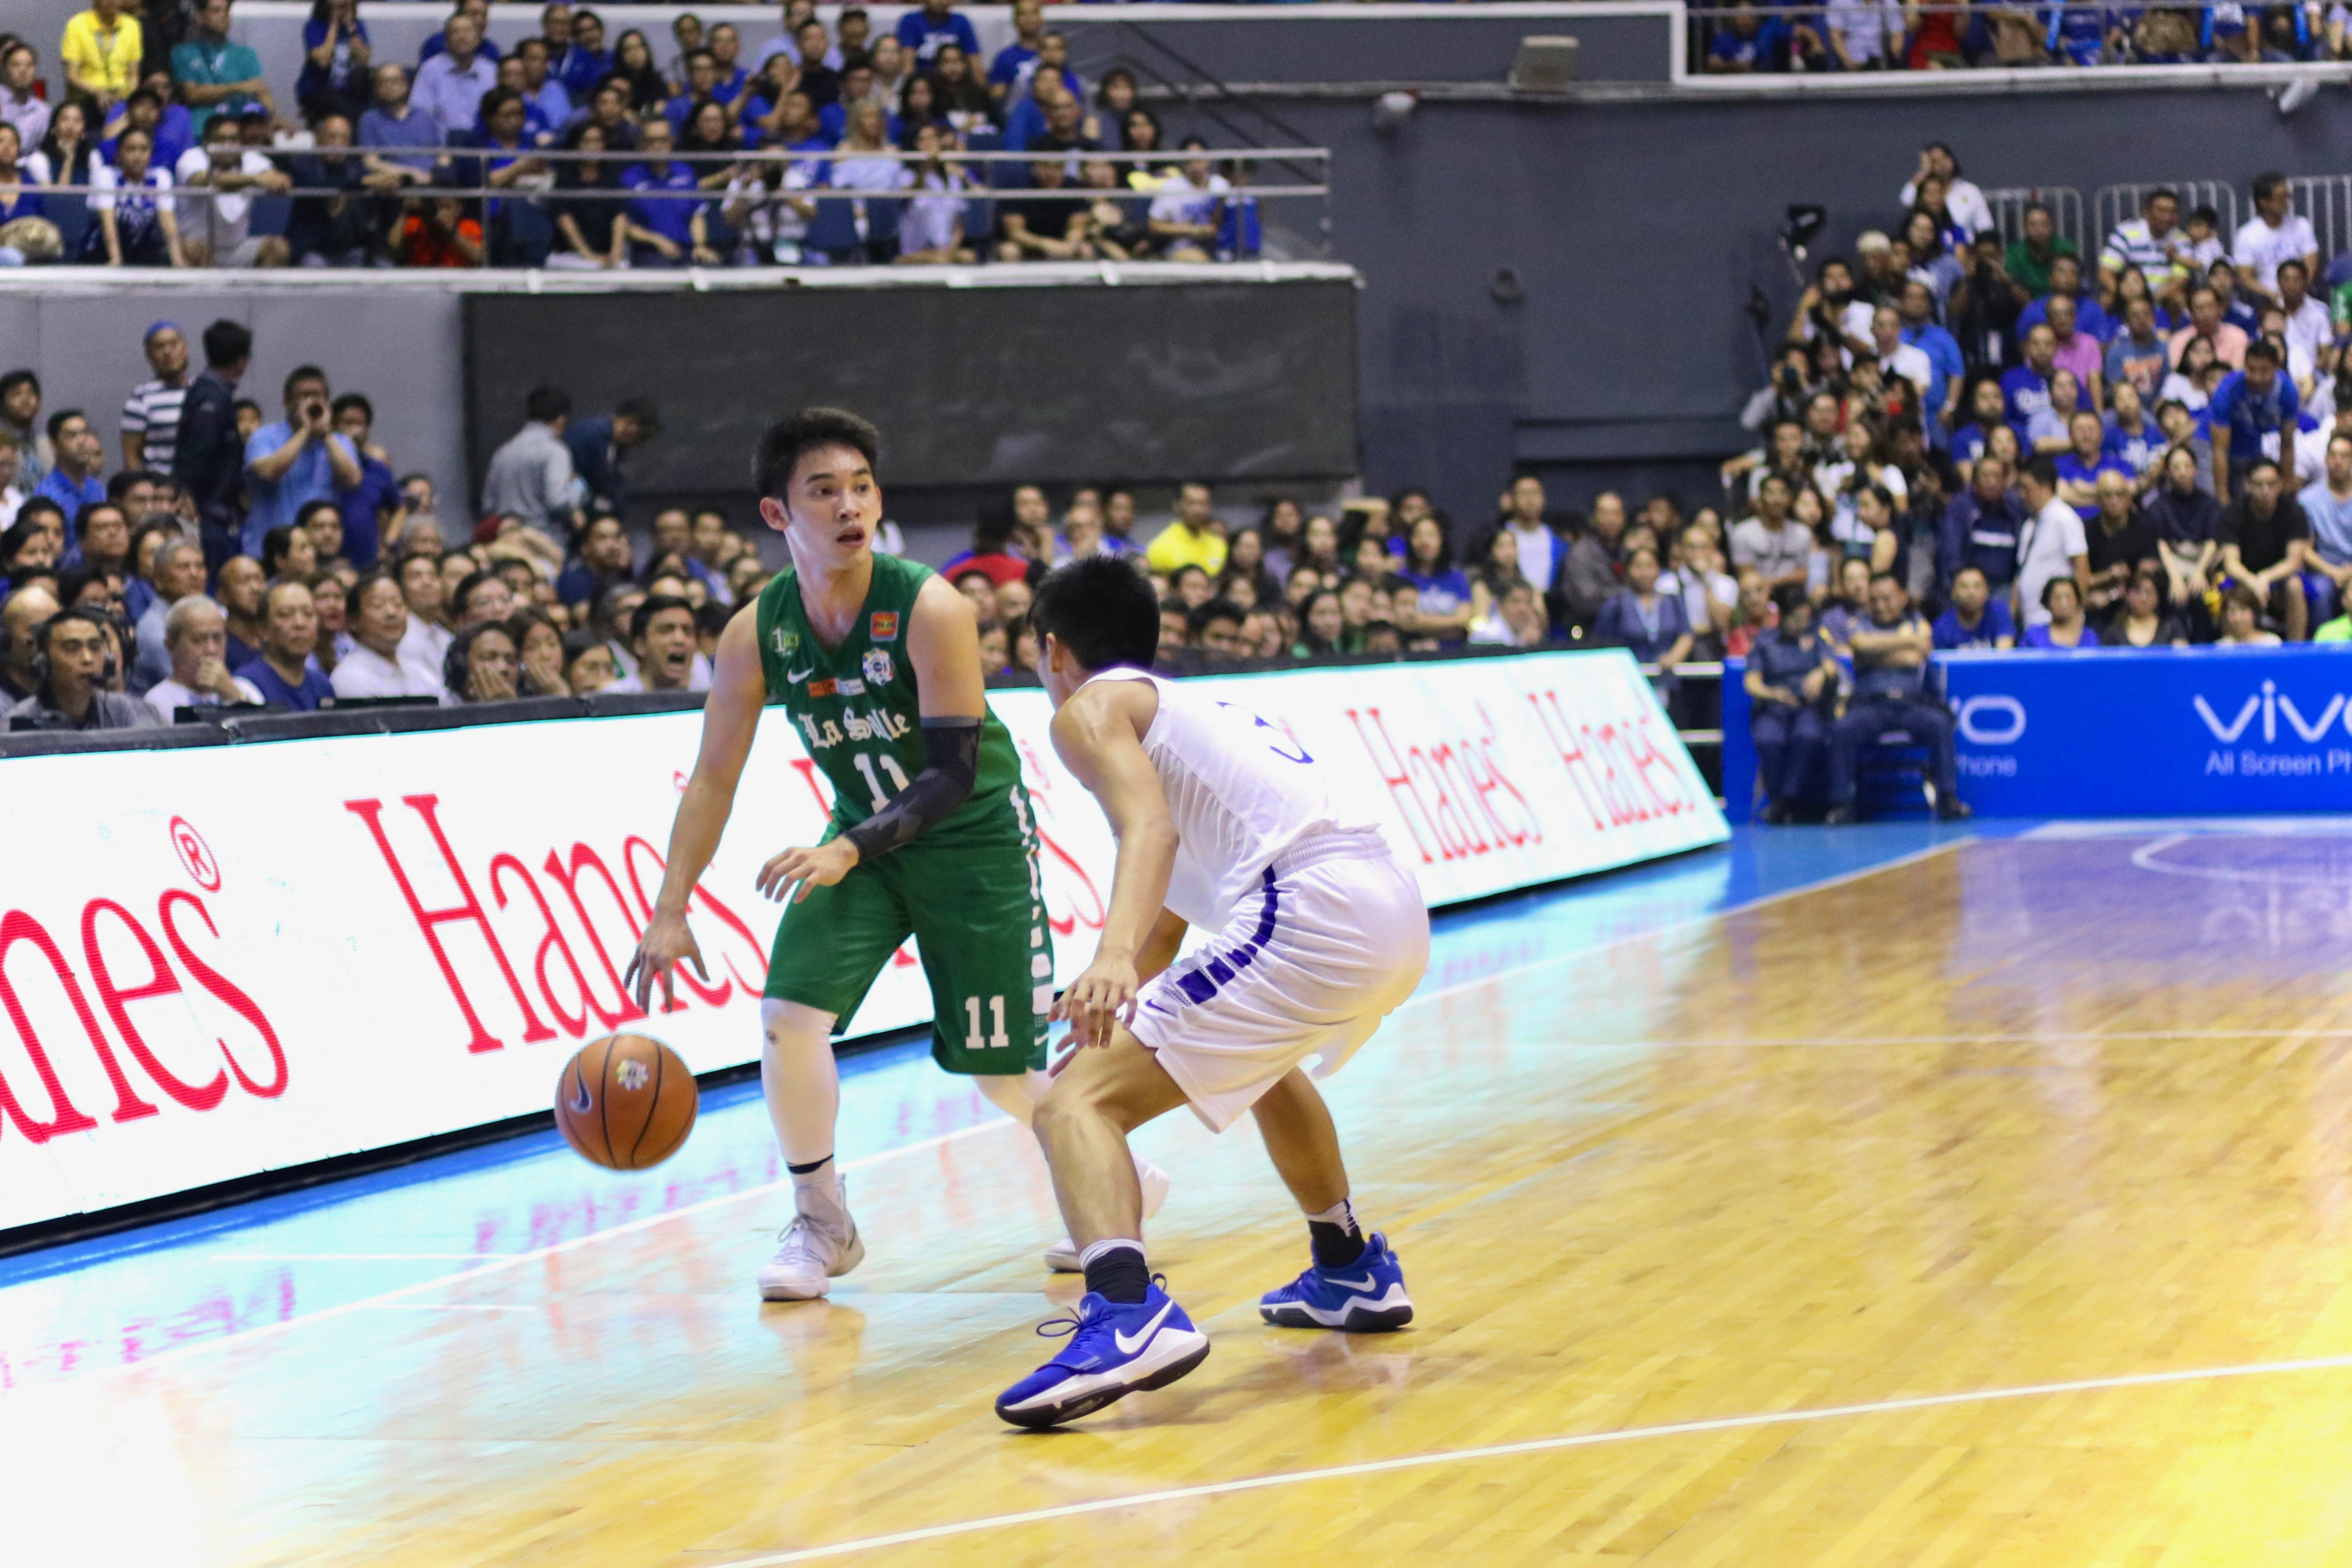 Aljun Melecio had 16 points and four assists in the heartbreaking loss for the Green Archers.